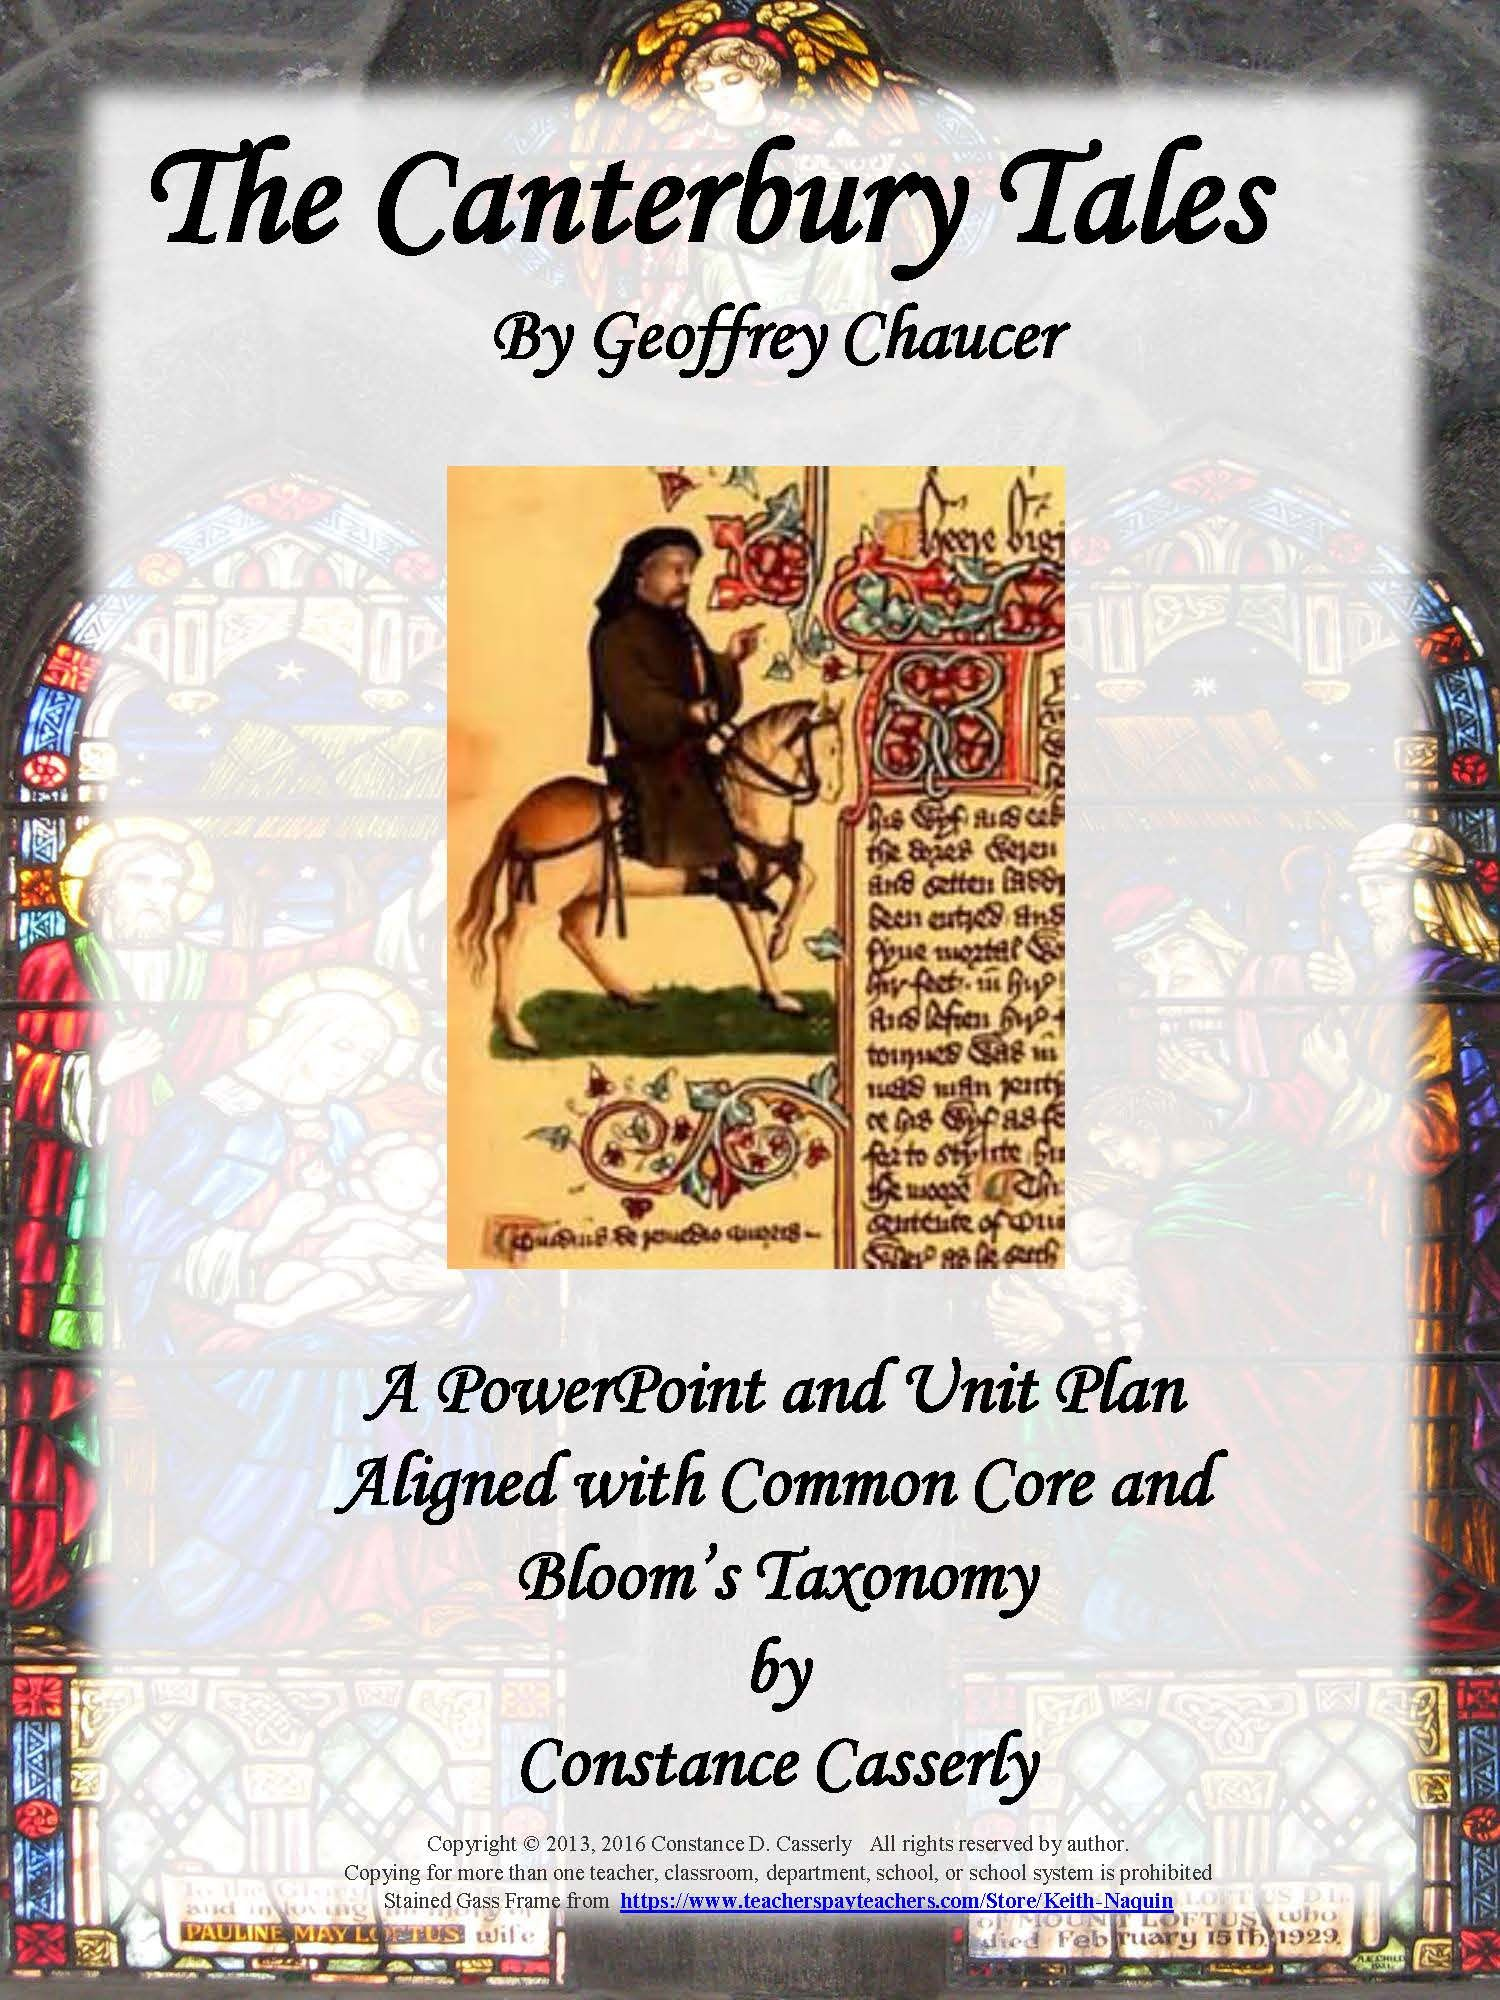 literature the canterbury tales powerpoint and unit plan a this 51 page unit plan for the canterbury tales includes all of the material from